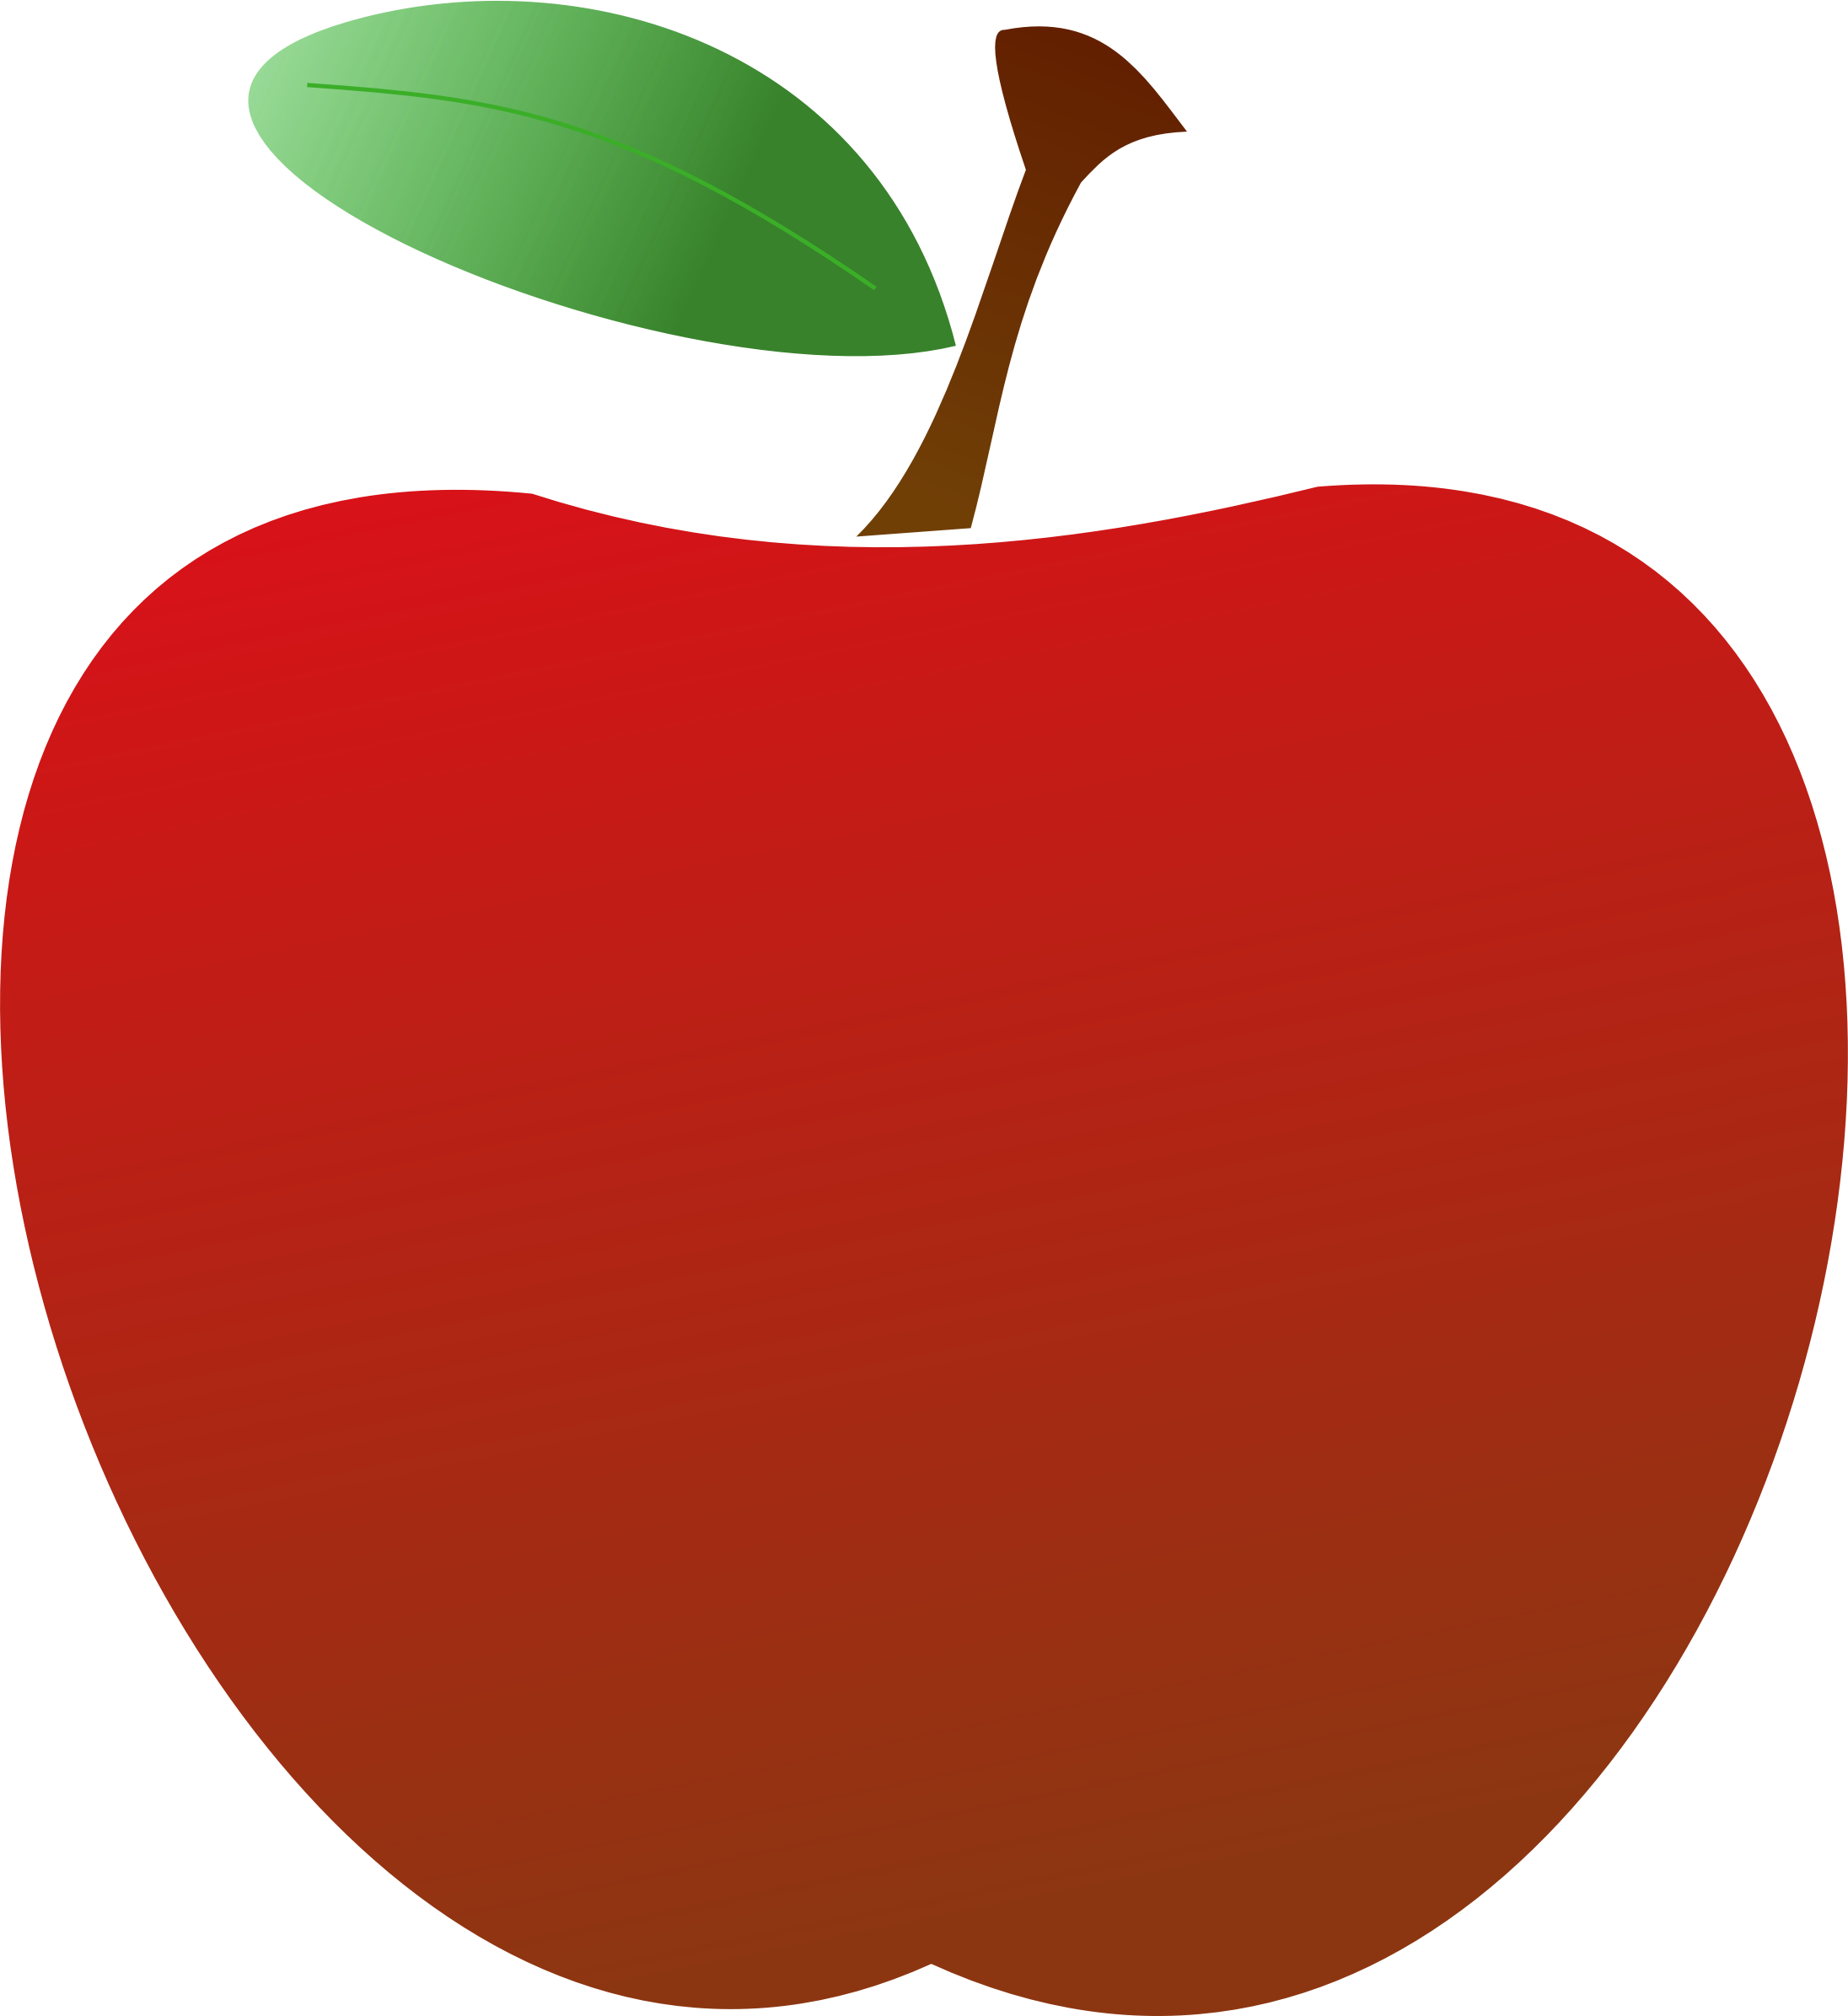 Red apple big image. Clipart food simple